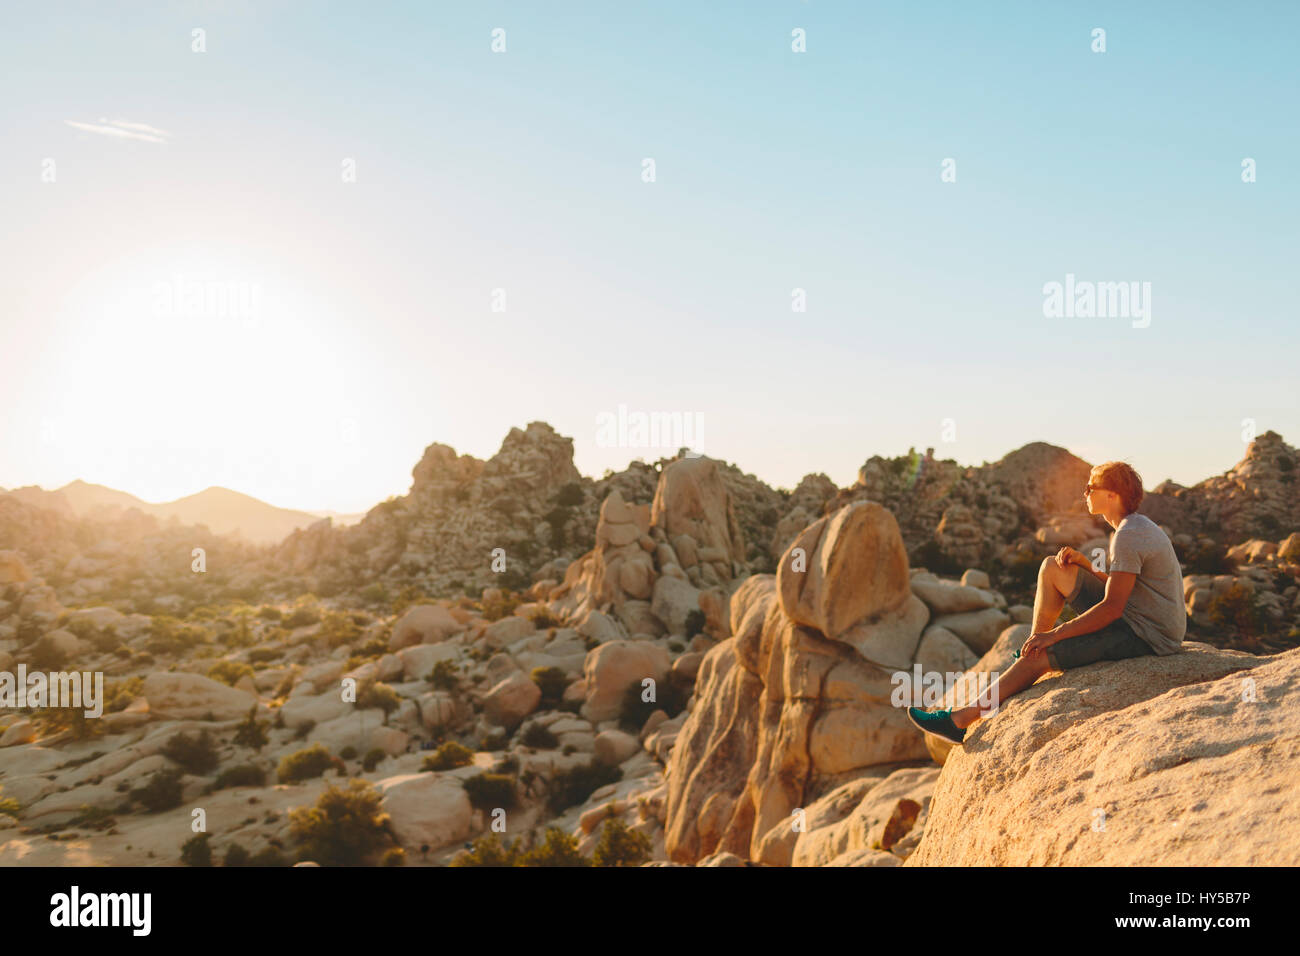 États-unis, Californie, Joshua Tree National Park, man sitting on rock et regardant rocks Photo Stock